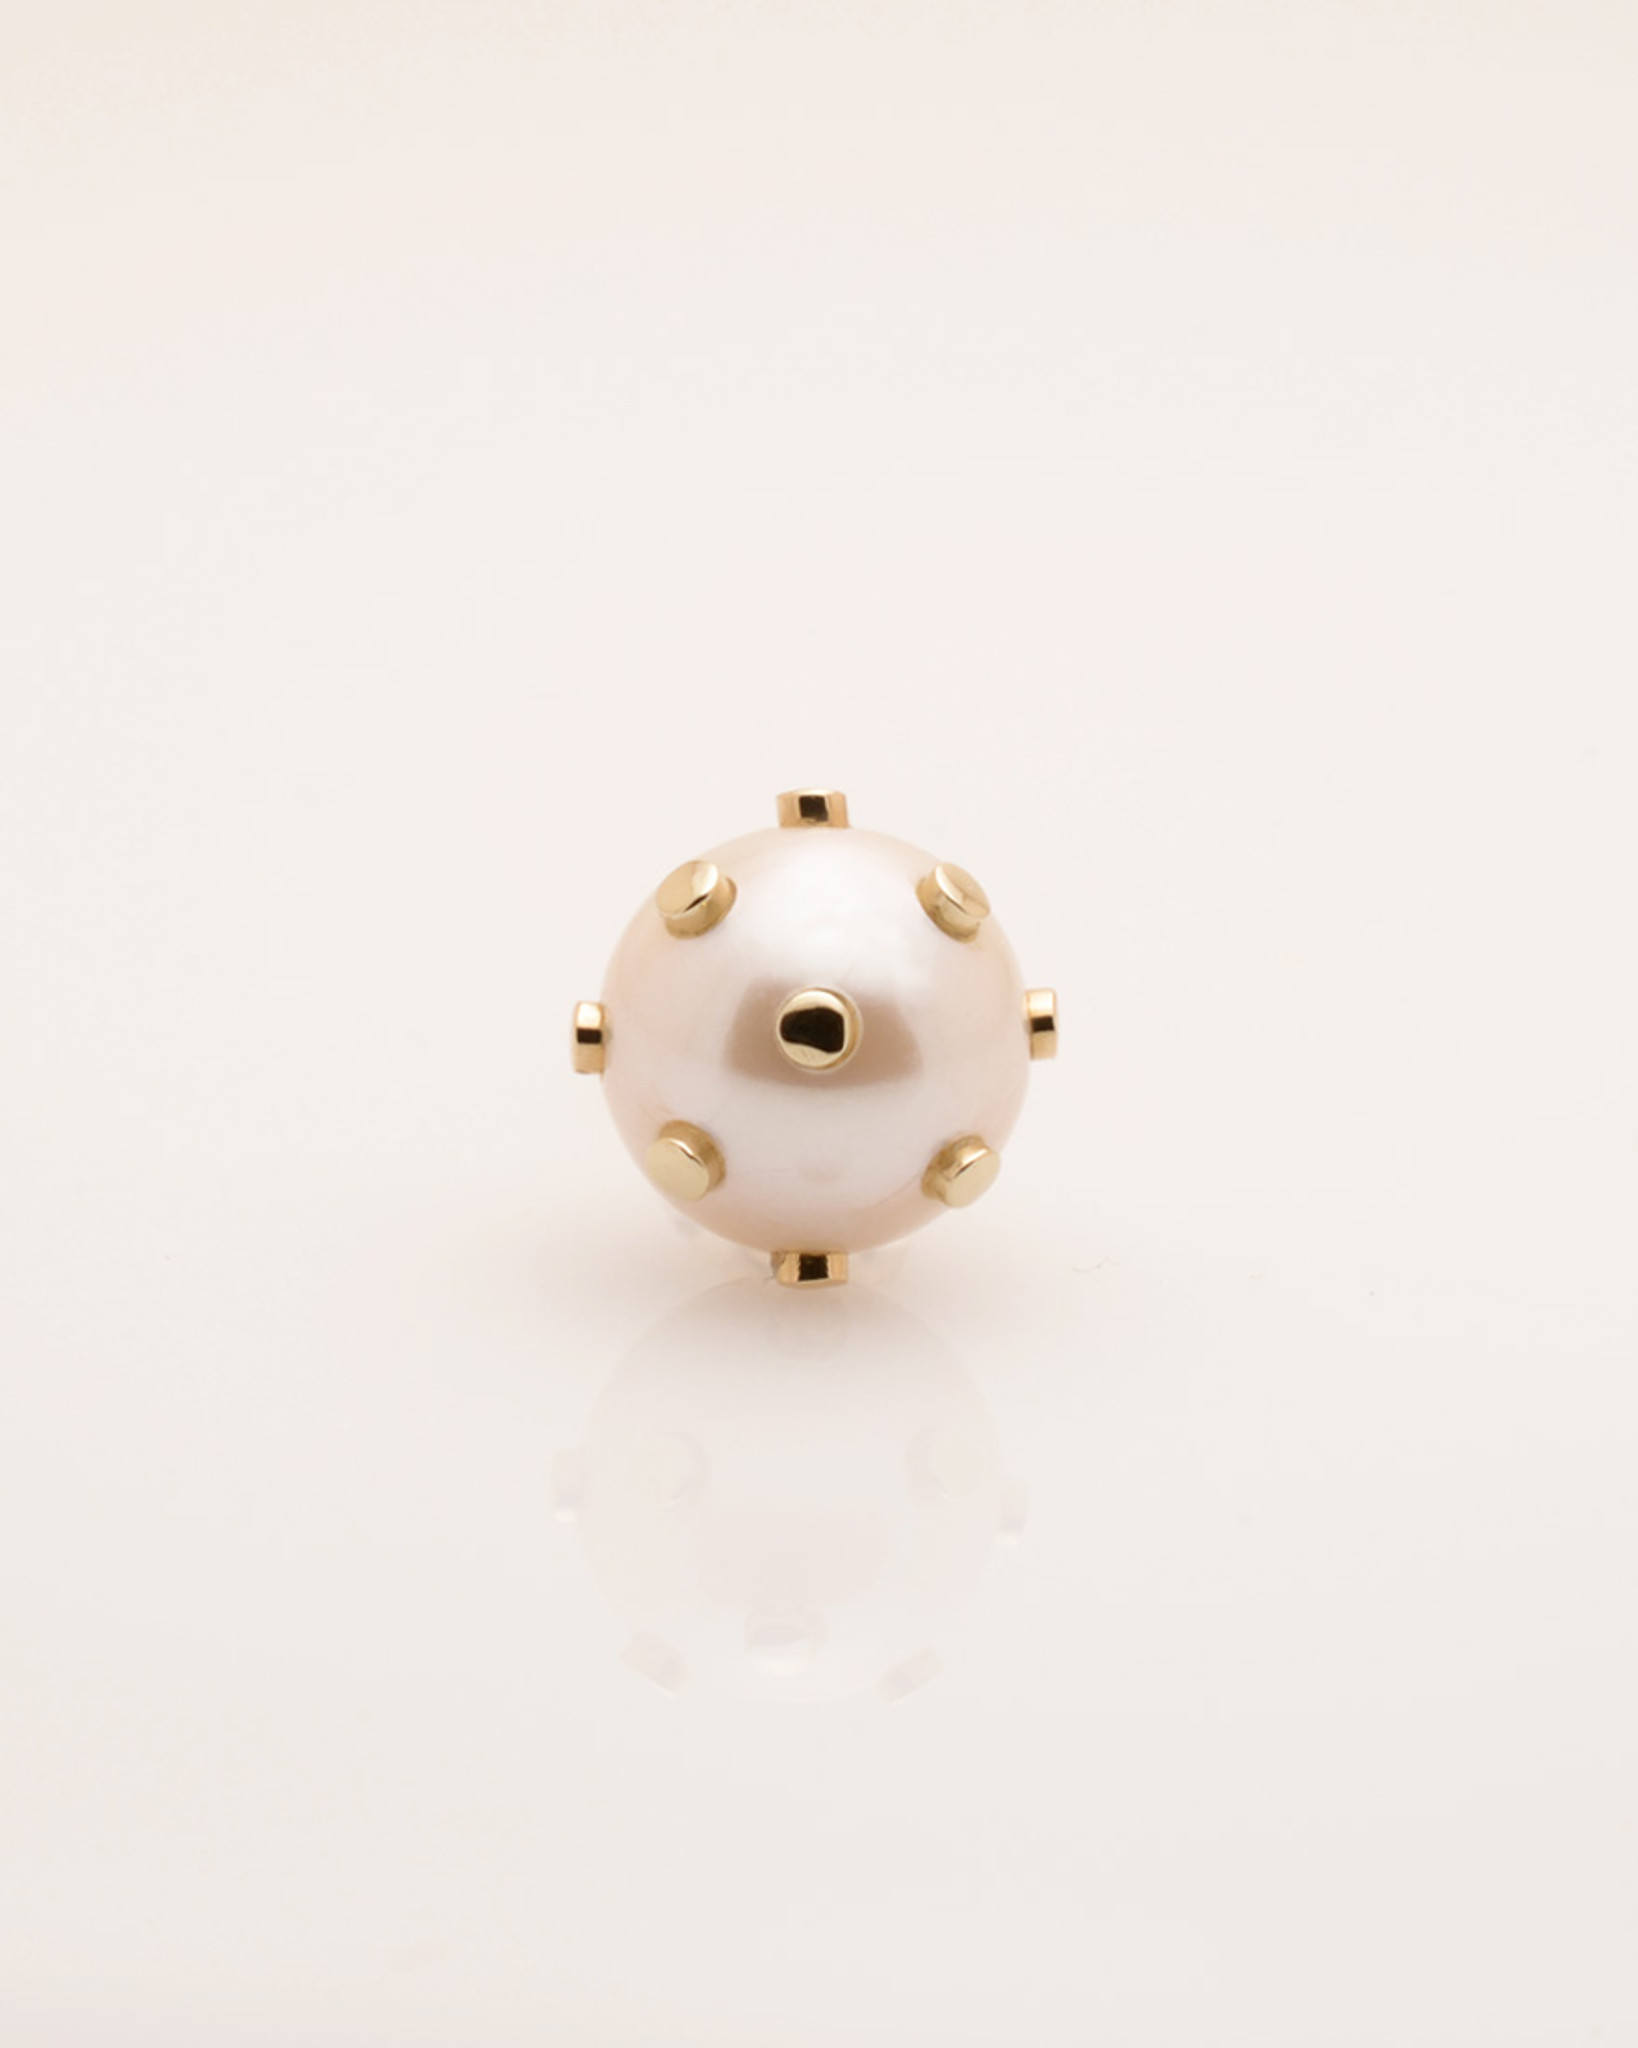 Single Cultured Freshwater Pearl Earring with 14k Gold Dots & Post by Jewelry Designer Nektar De Stagni (8-9mm)